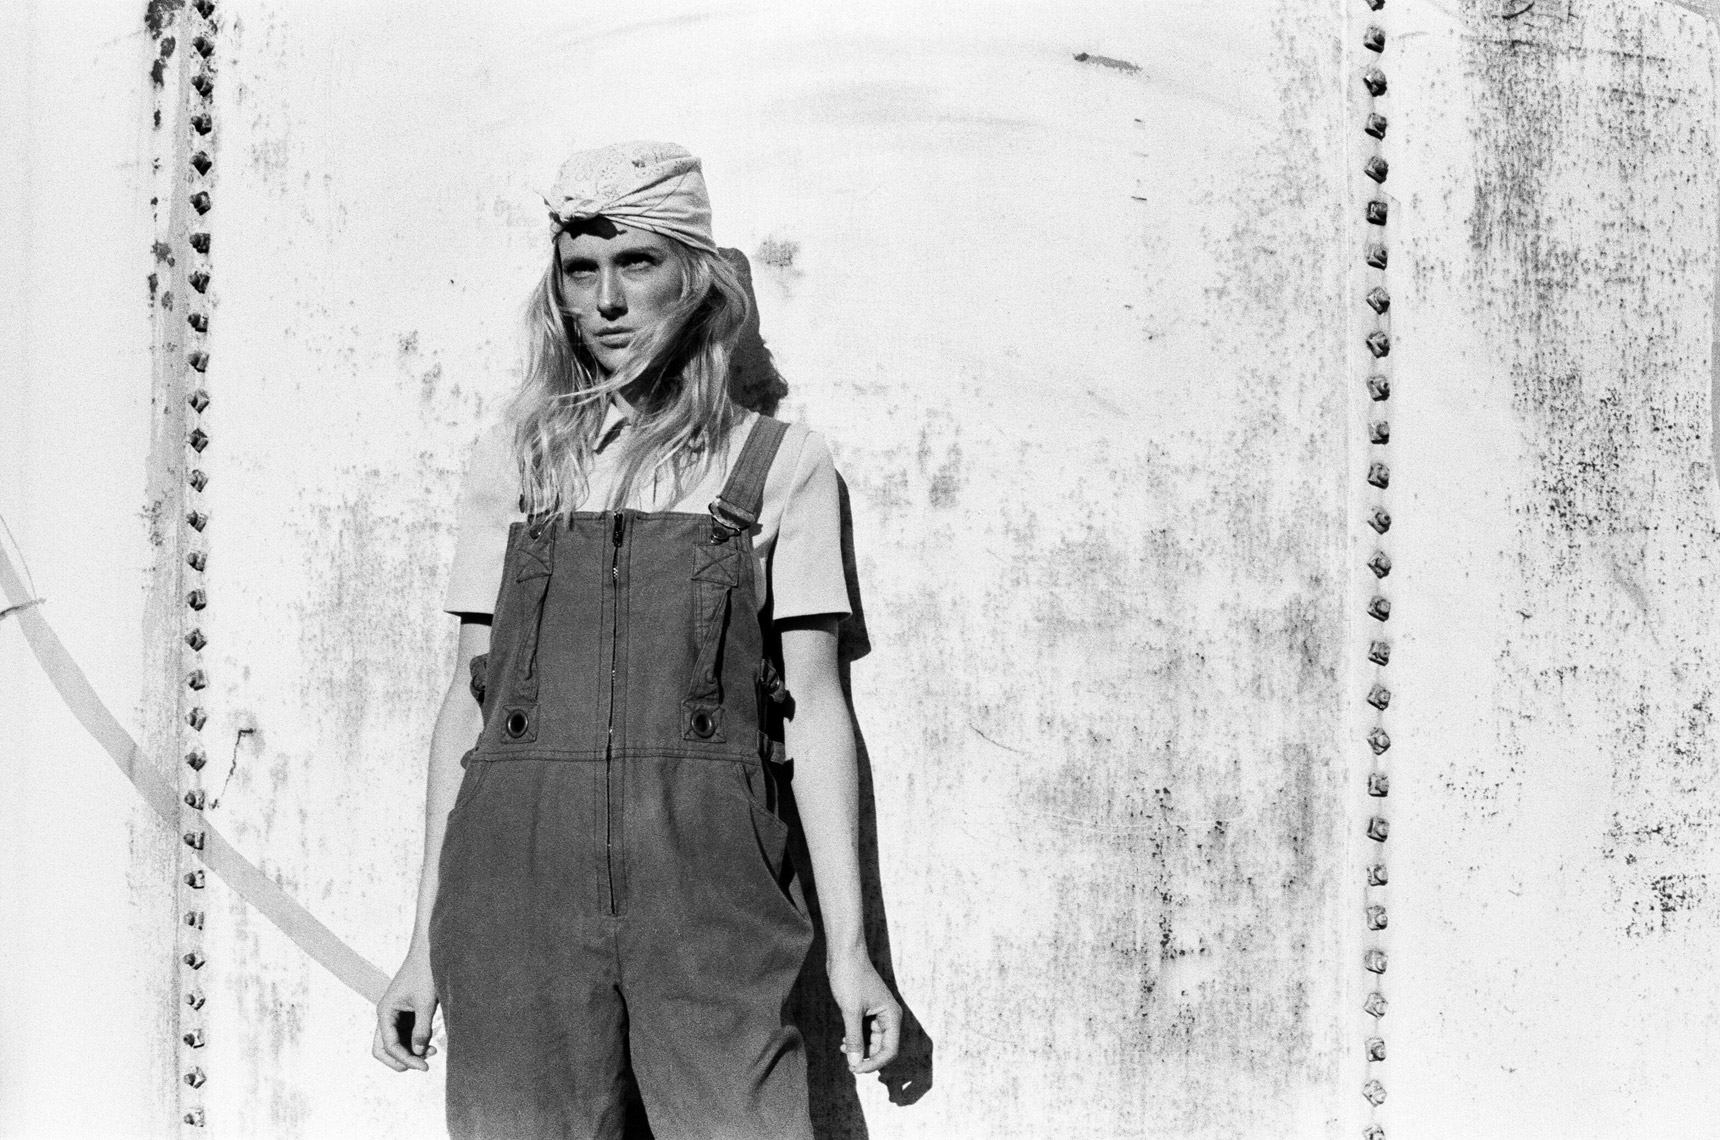 004_17950028Ranch_Hand_Woman_BlackandWhite